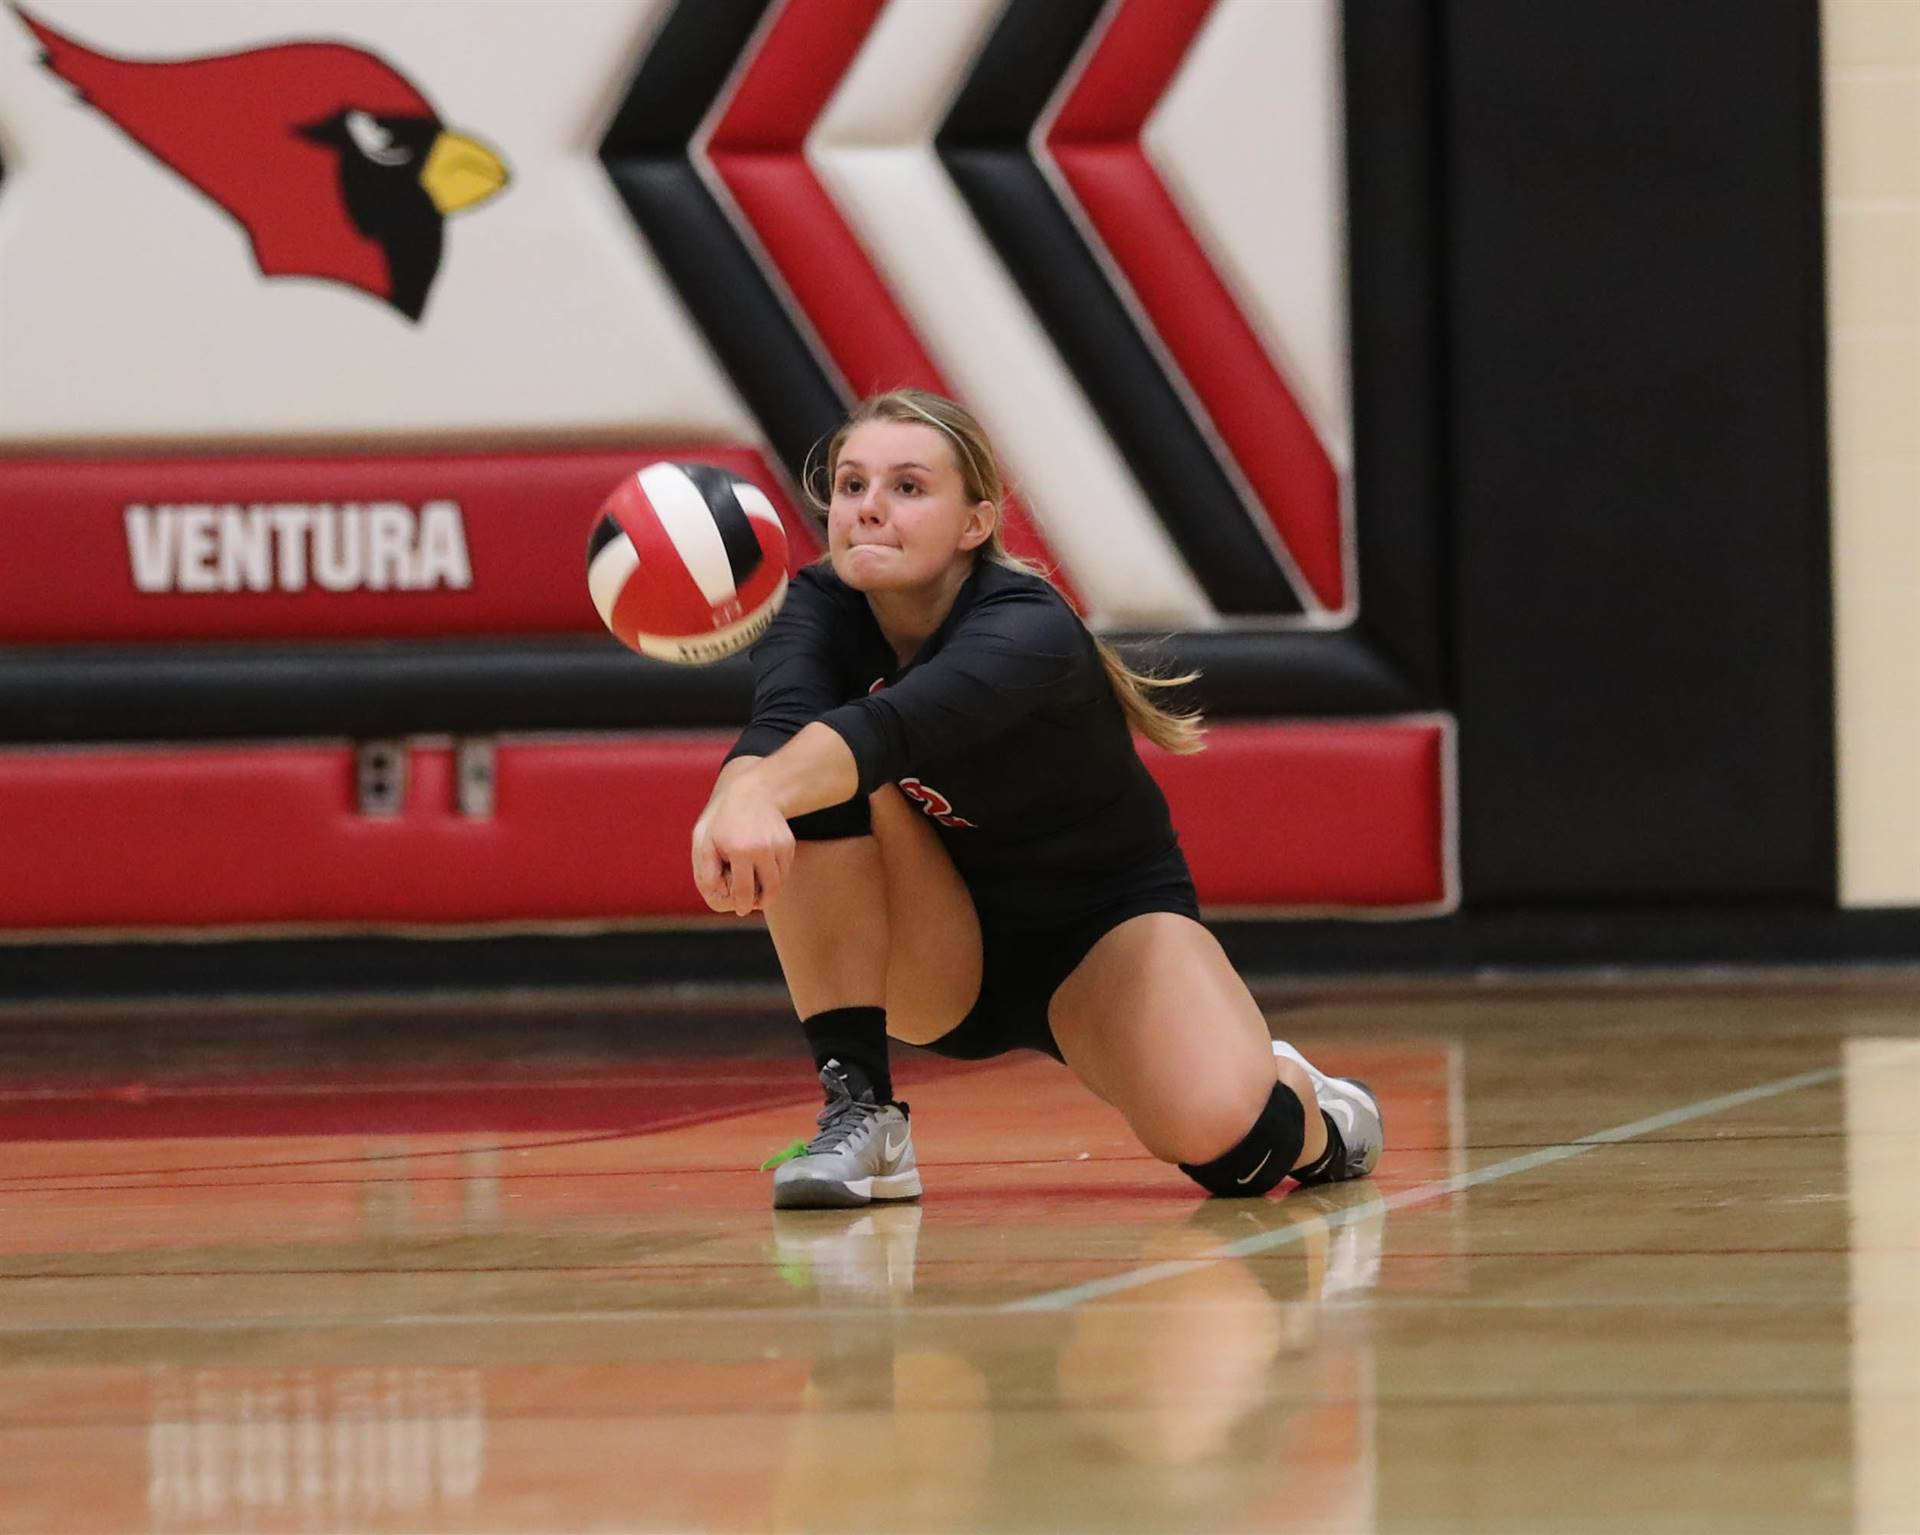 GHV High School volleyball player digging the volleyball during serve reception